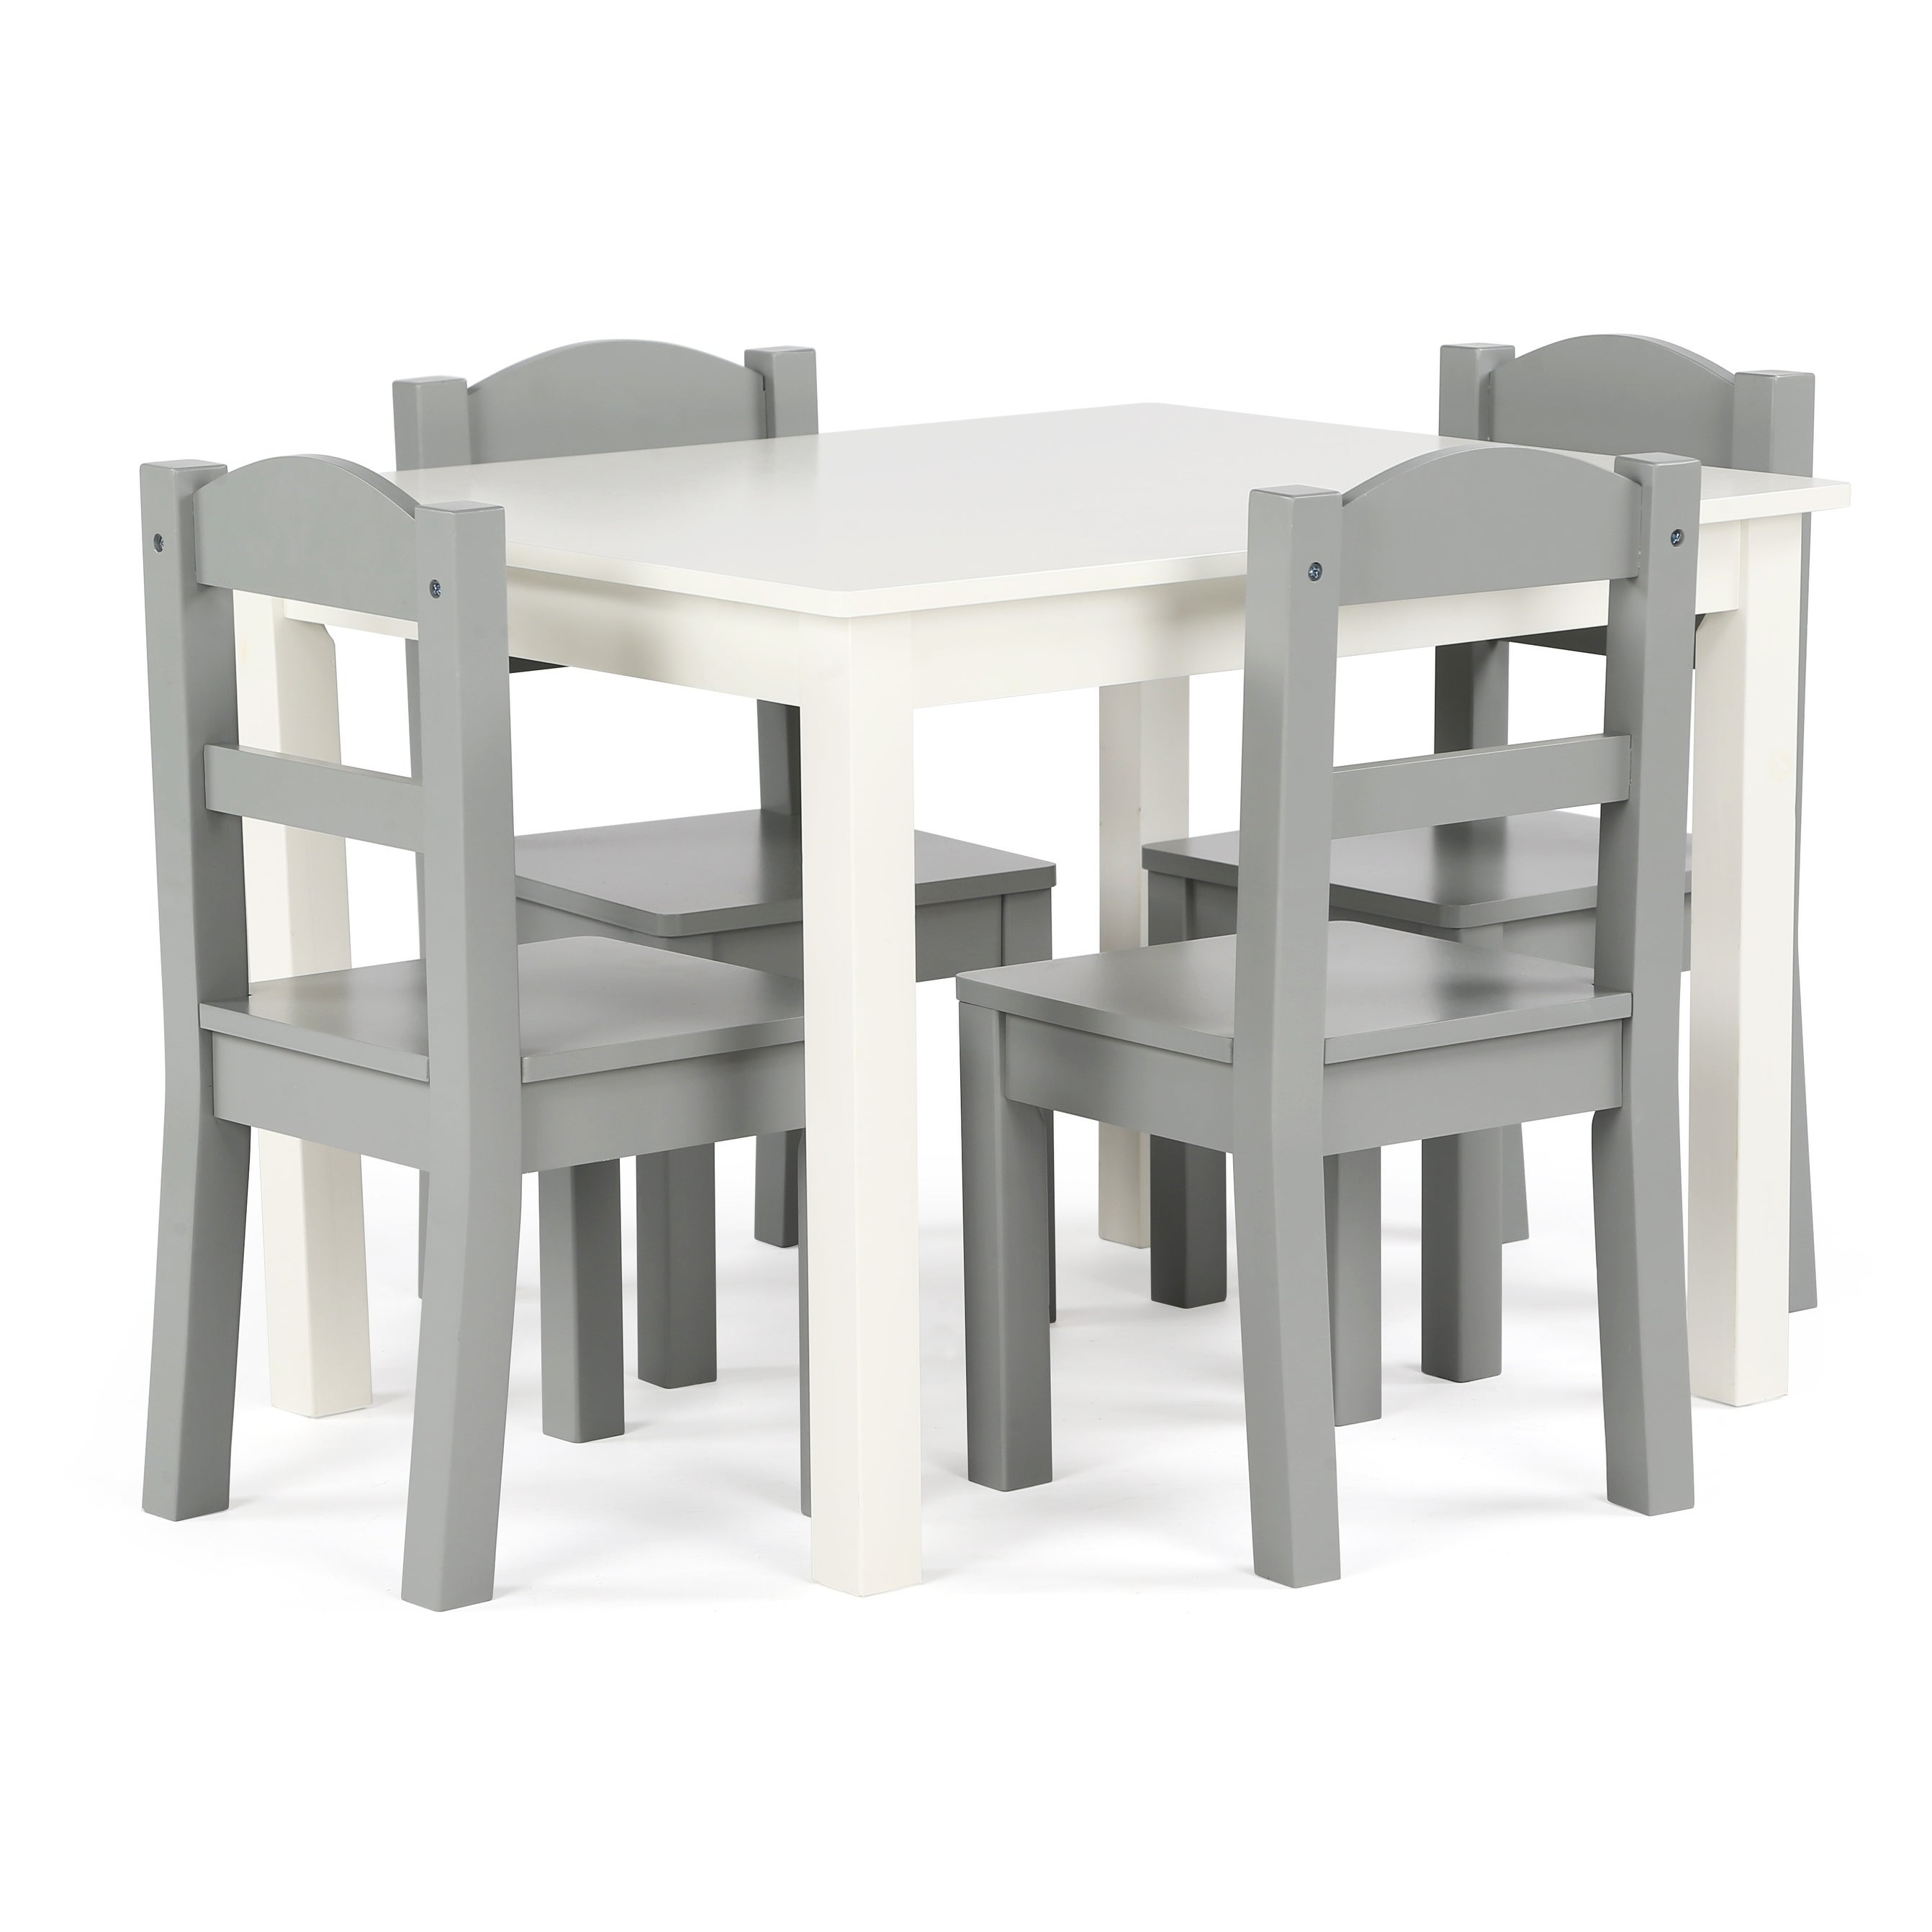 Springfield 5 Piece Wood Kids Table Chairs Set In White Grey